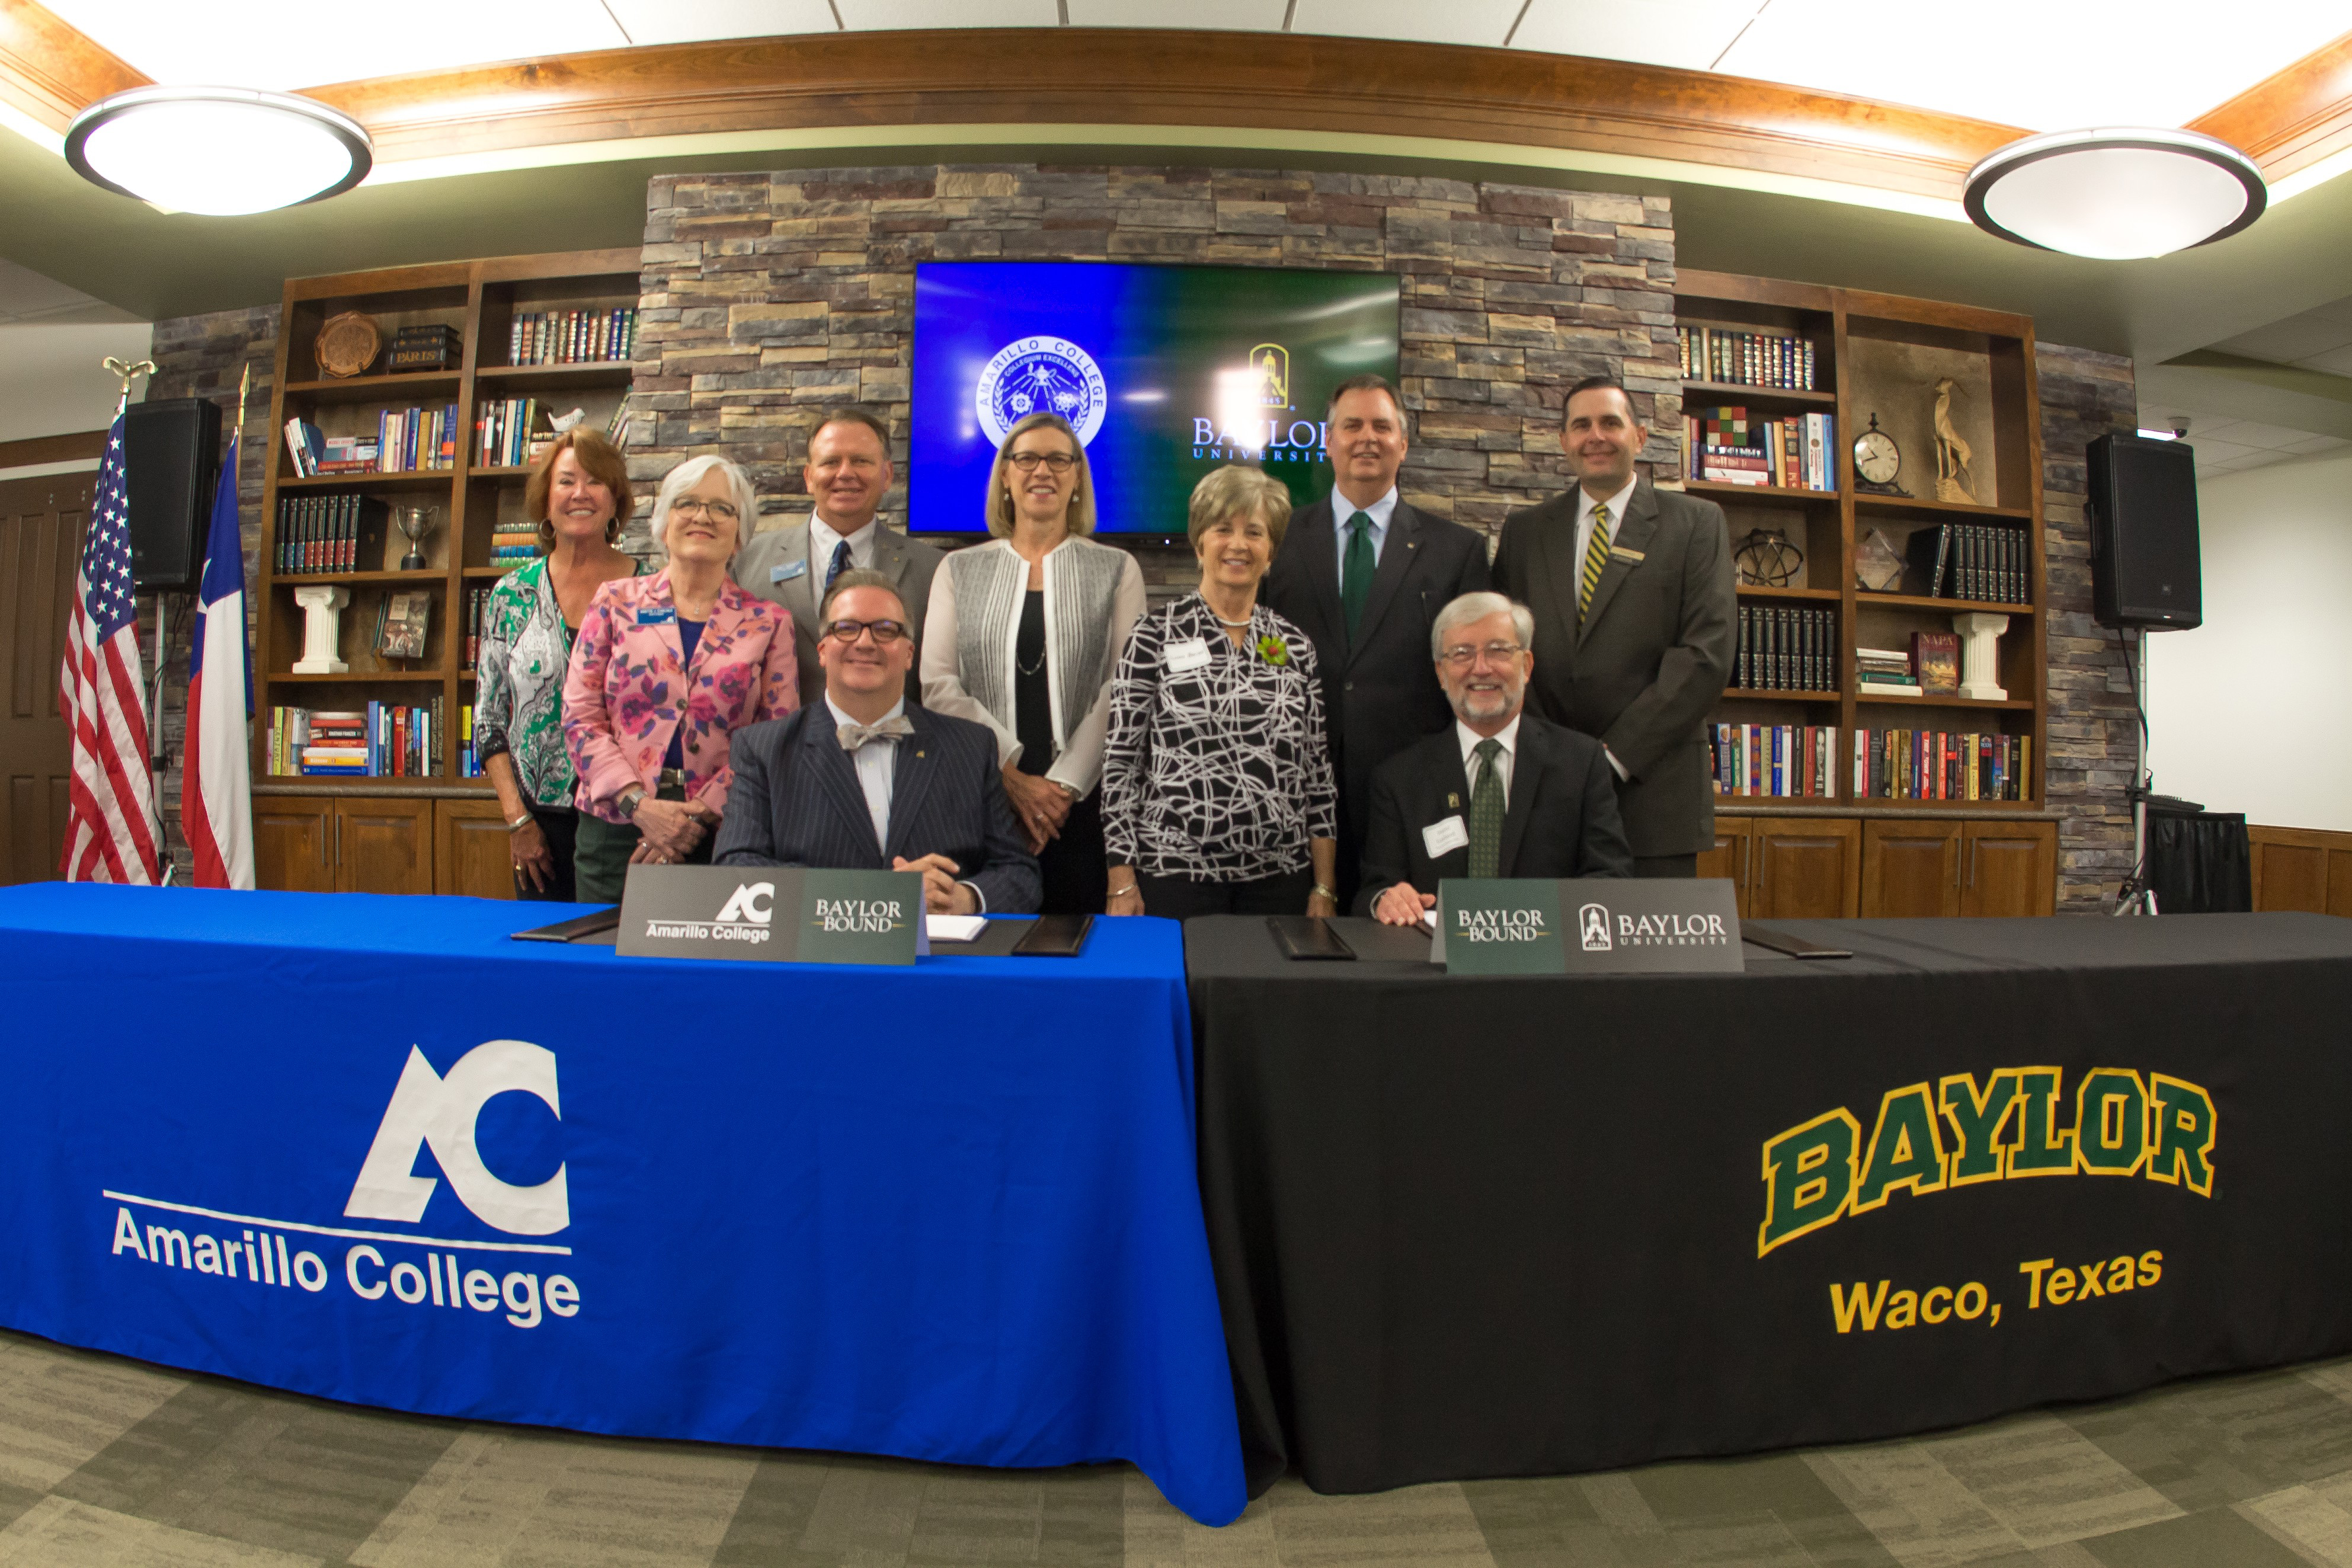 Baylor University And Amarillo College Announce Partnership On New